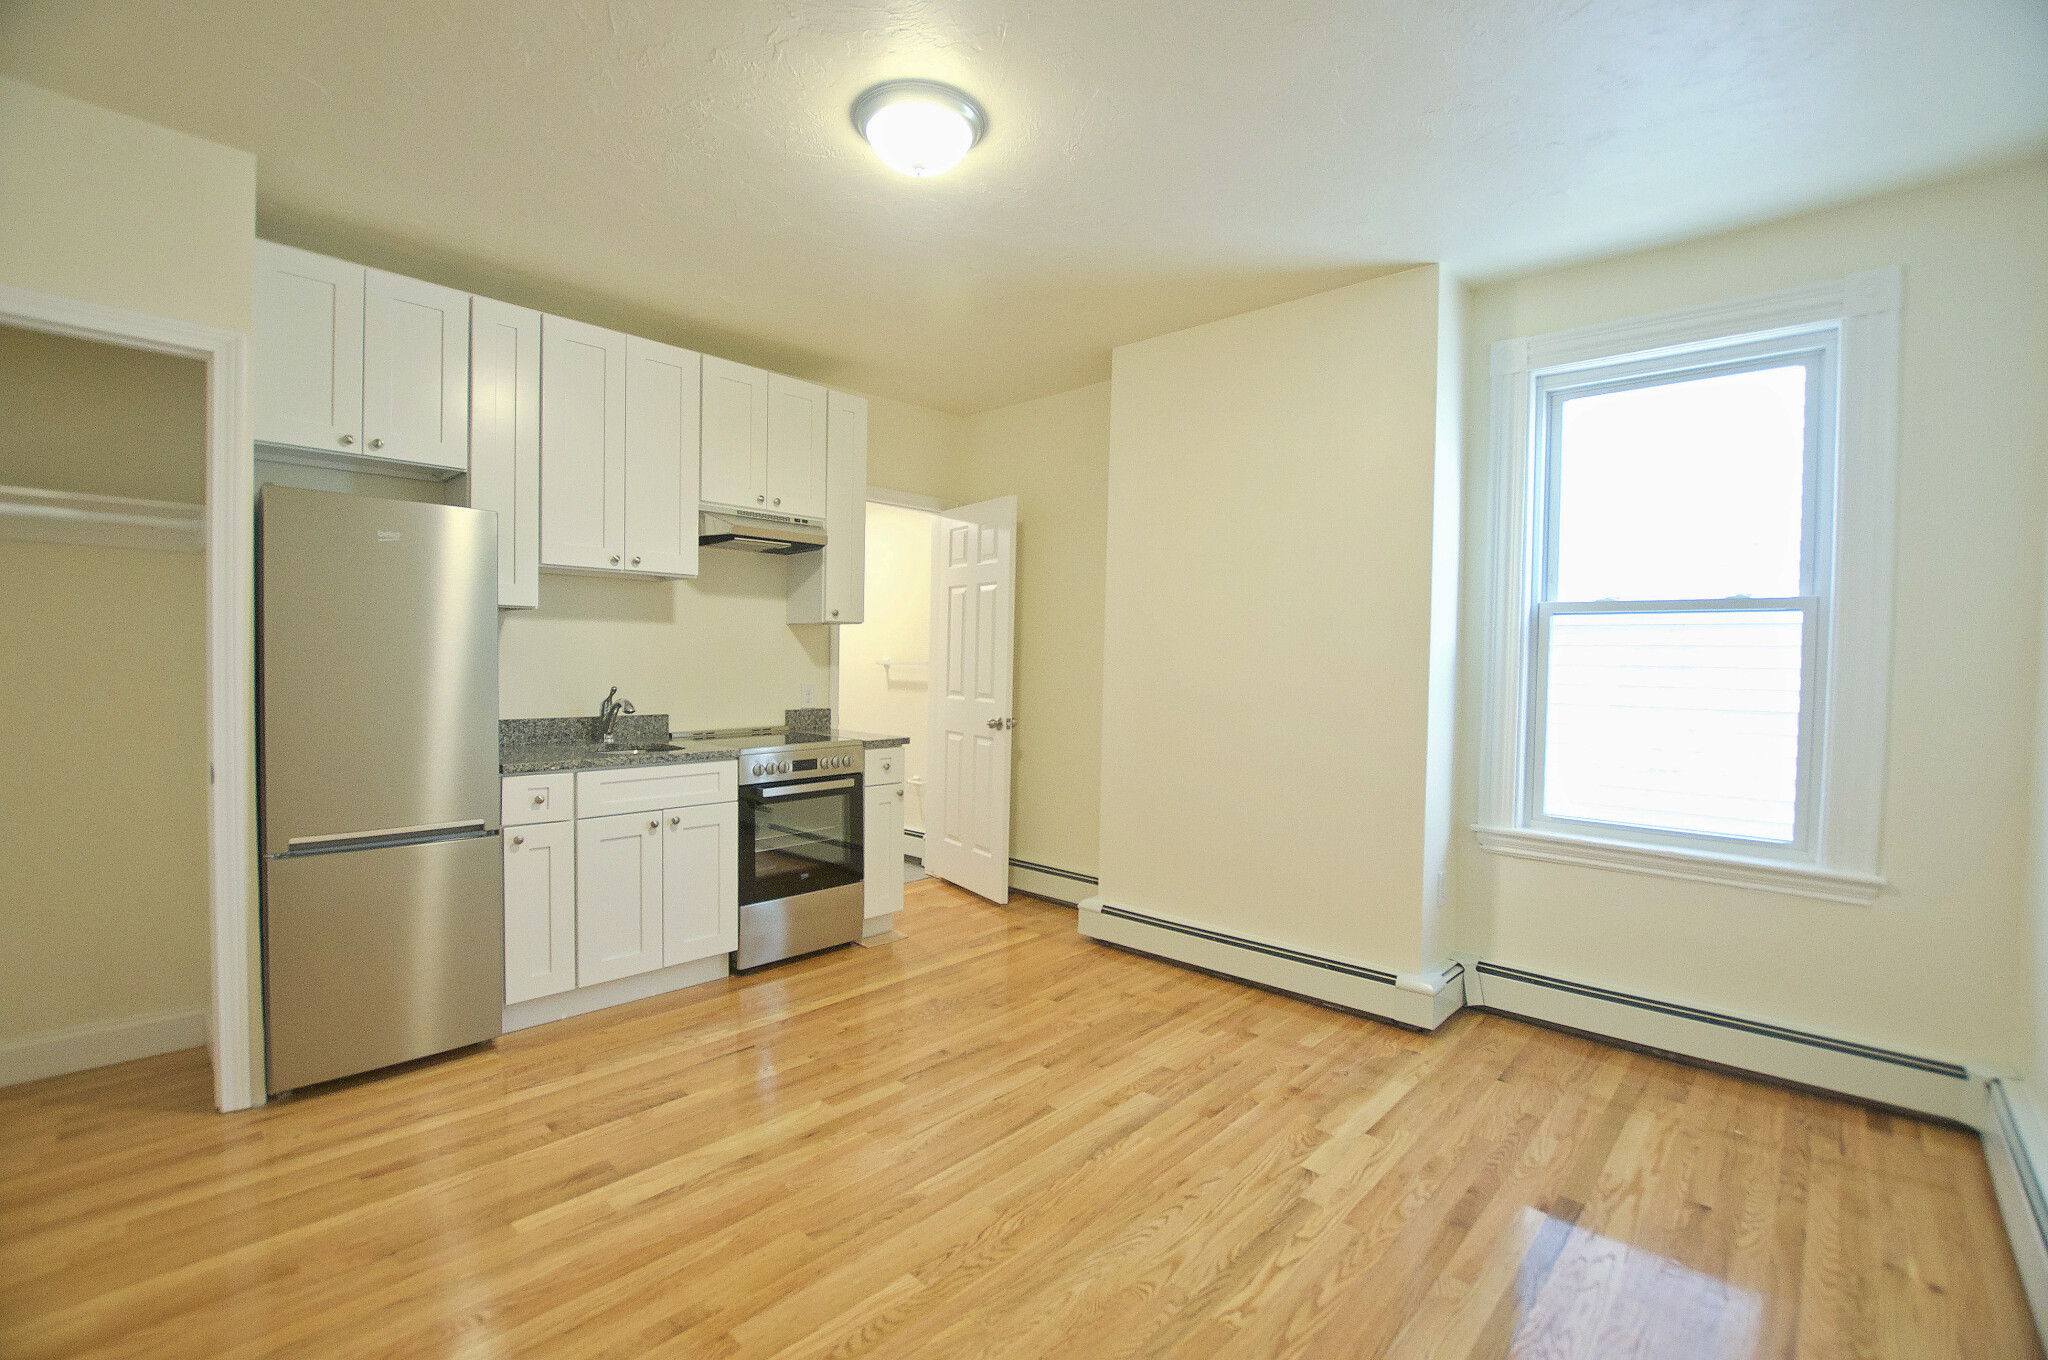 Studio, 1 Bath apartment in Boston, South Boston for $1,600